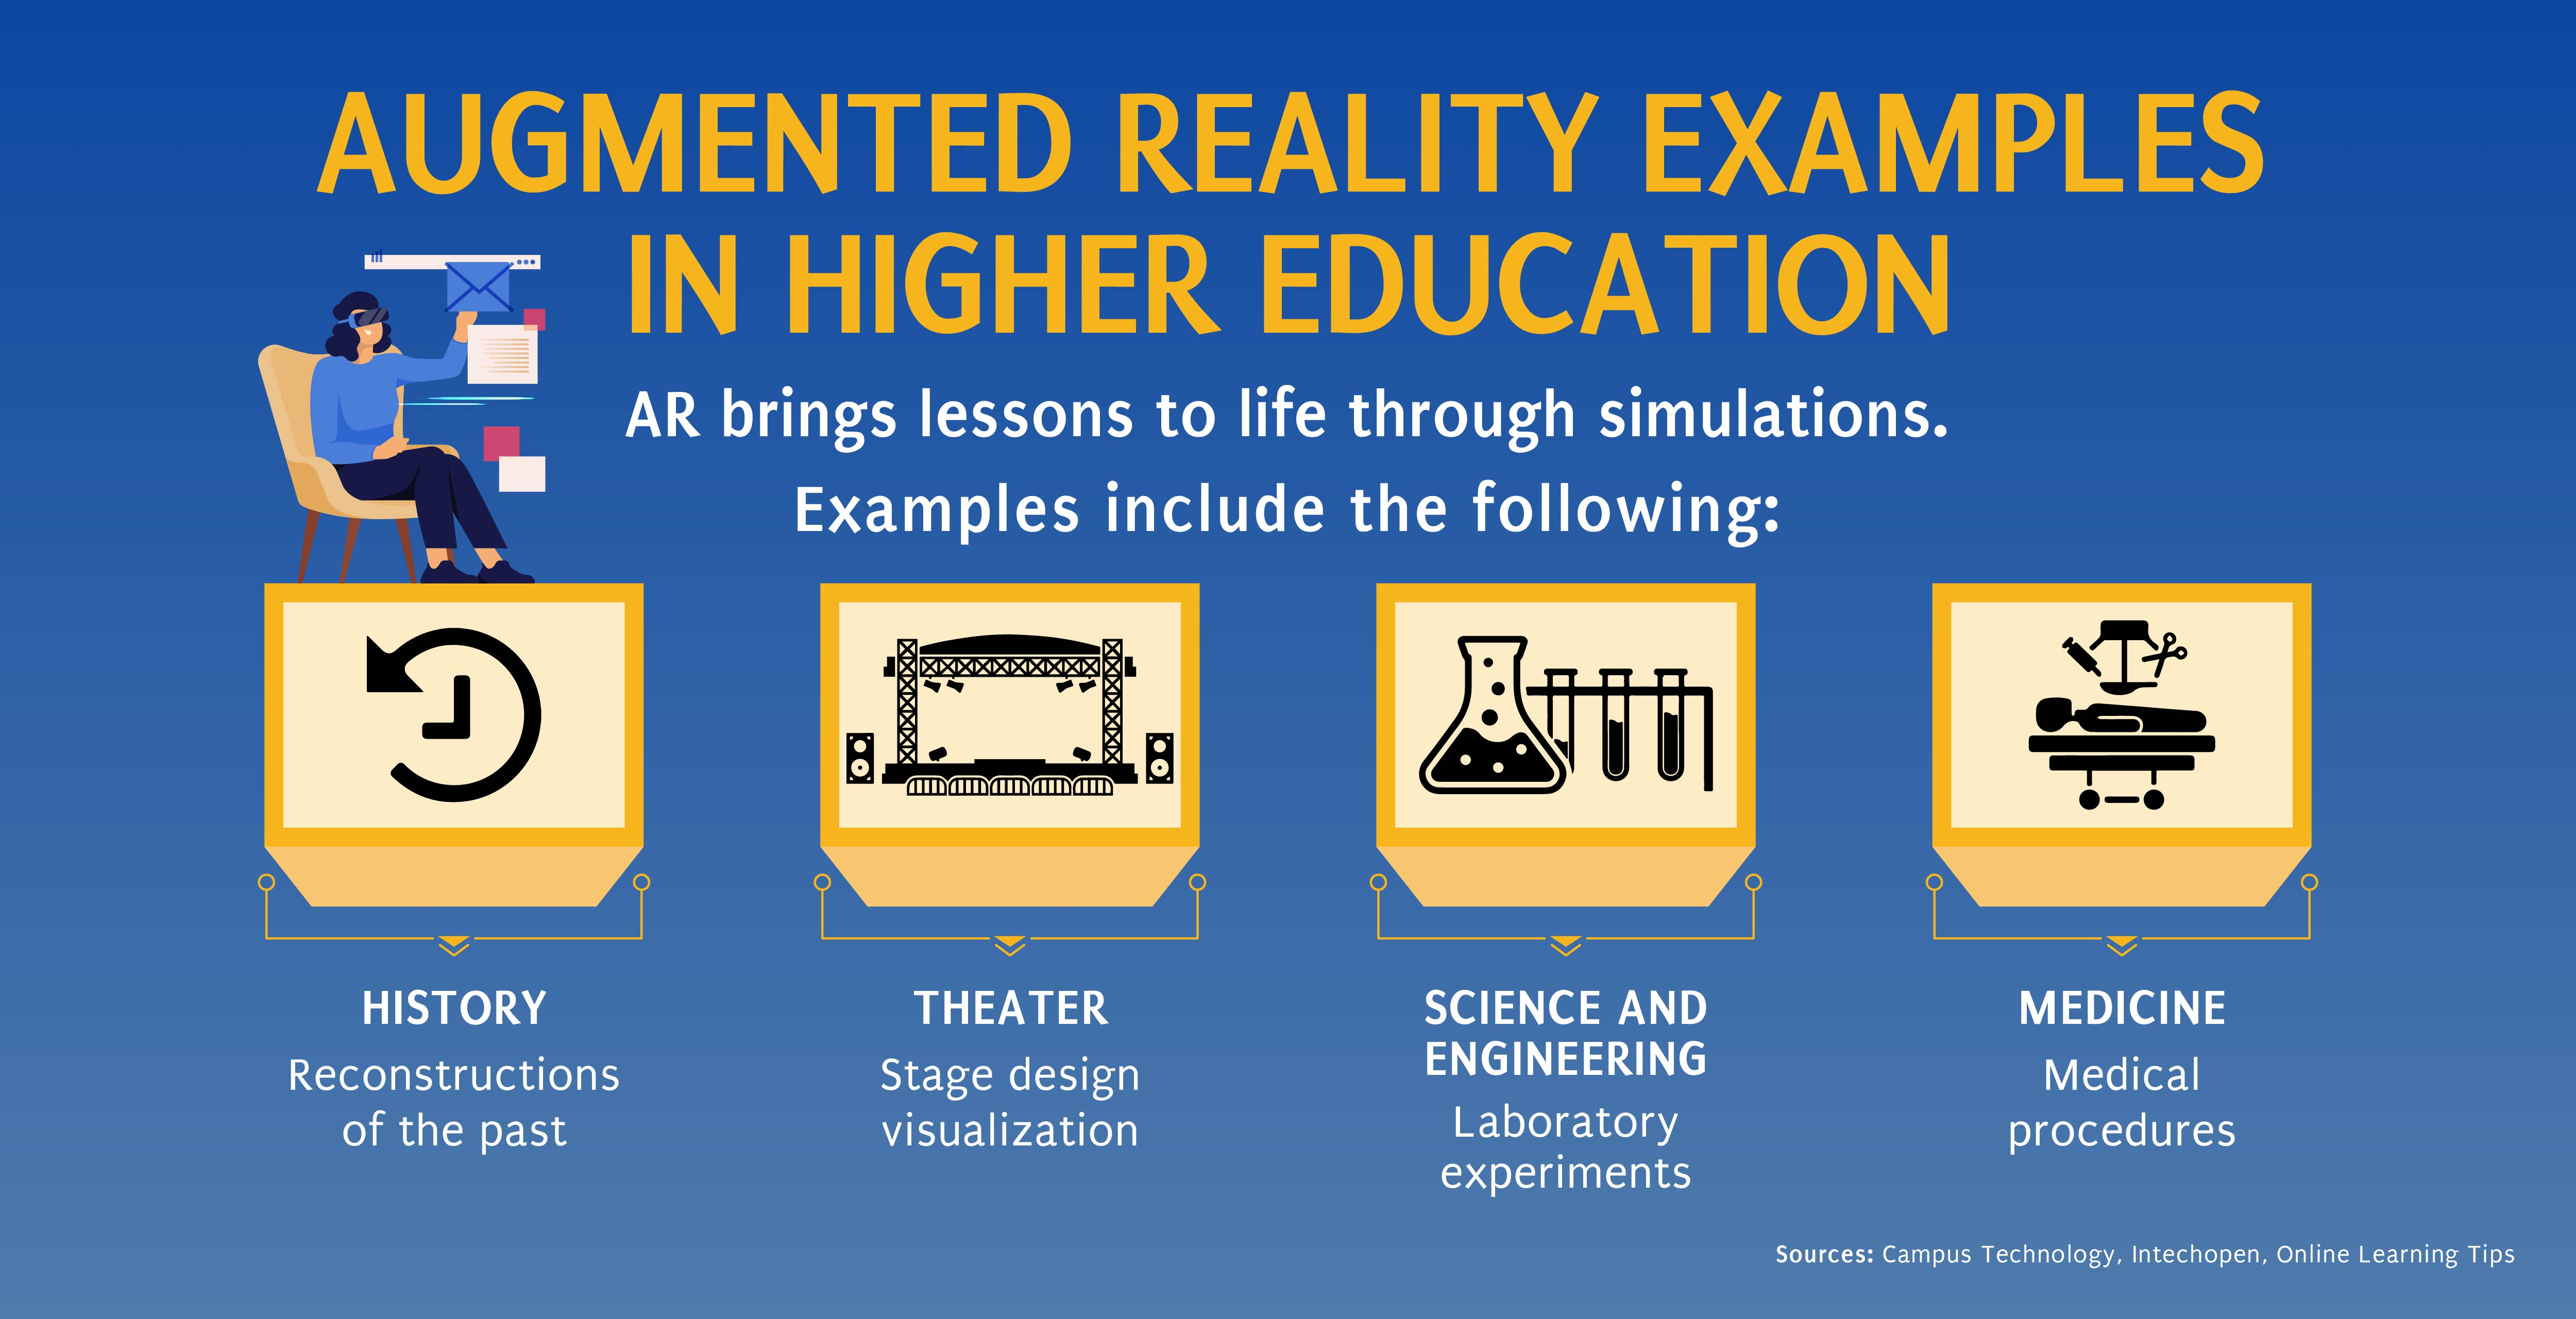 Examples of augmented reality's use in higher education.